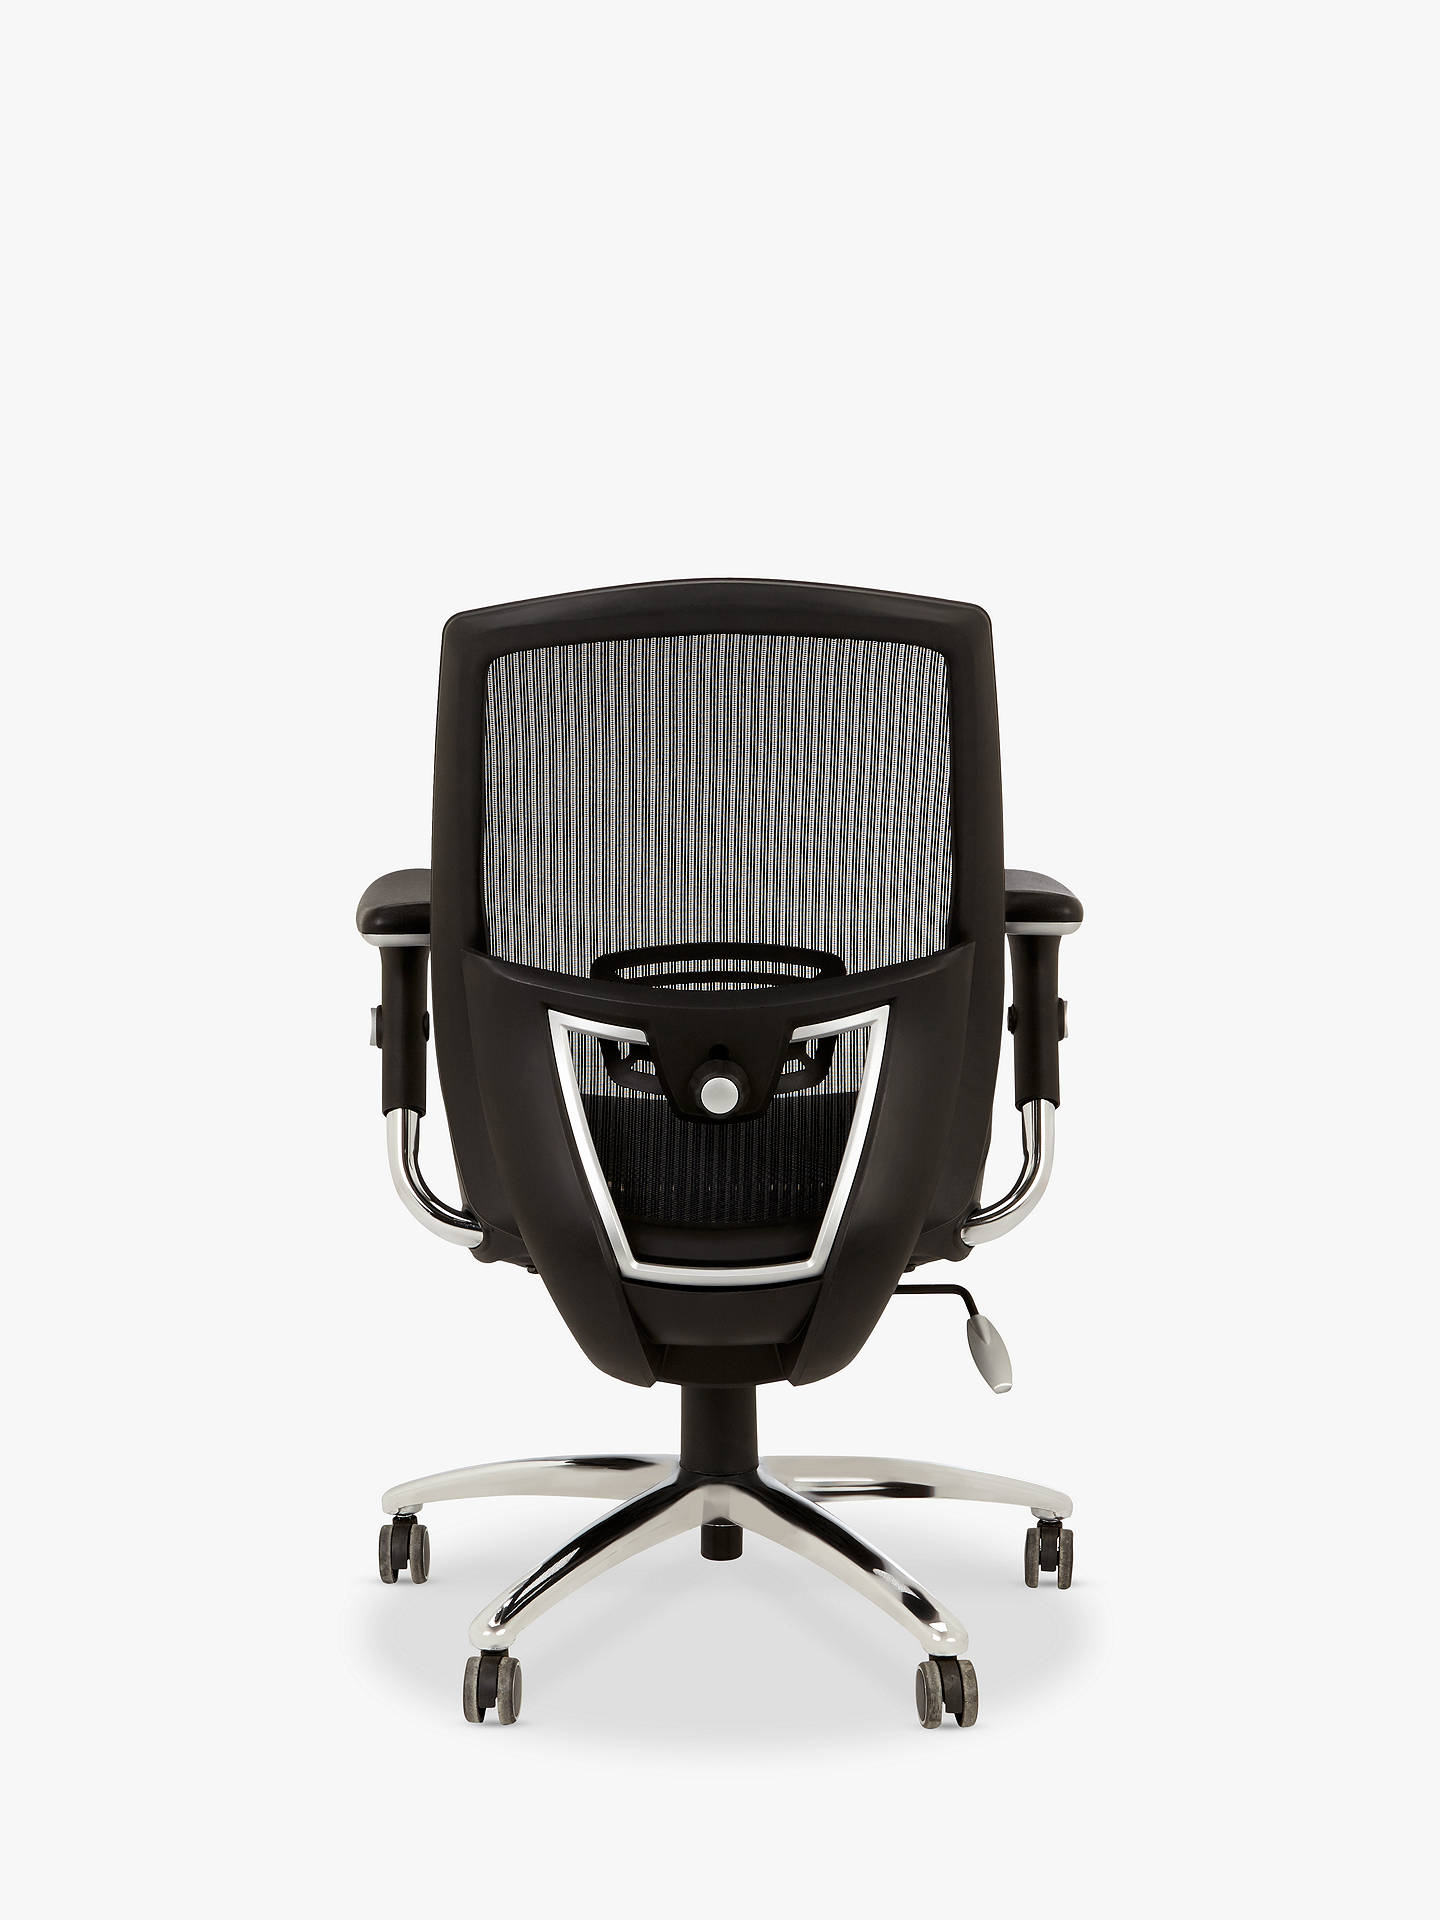 Incredible John Lewis Partners Murray Ergonomic Office Chair Black Interior Design Ideas Apansoteloinfo